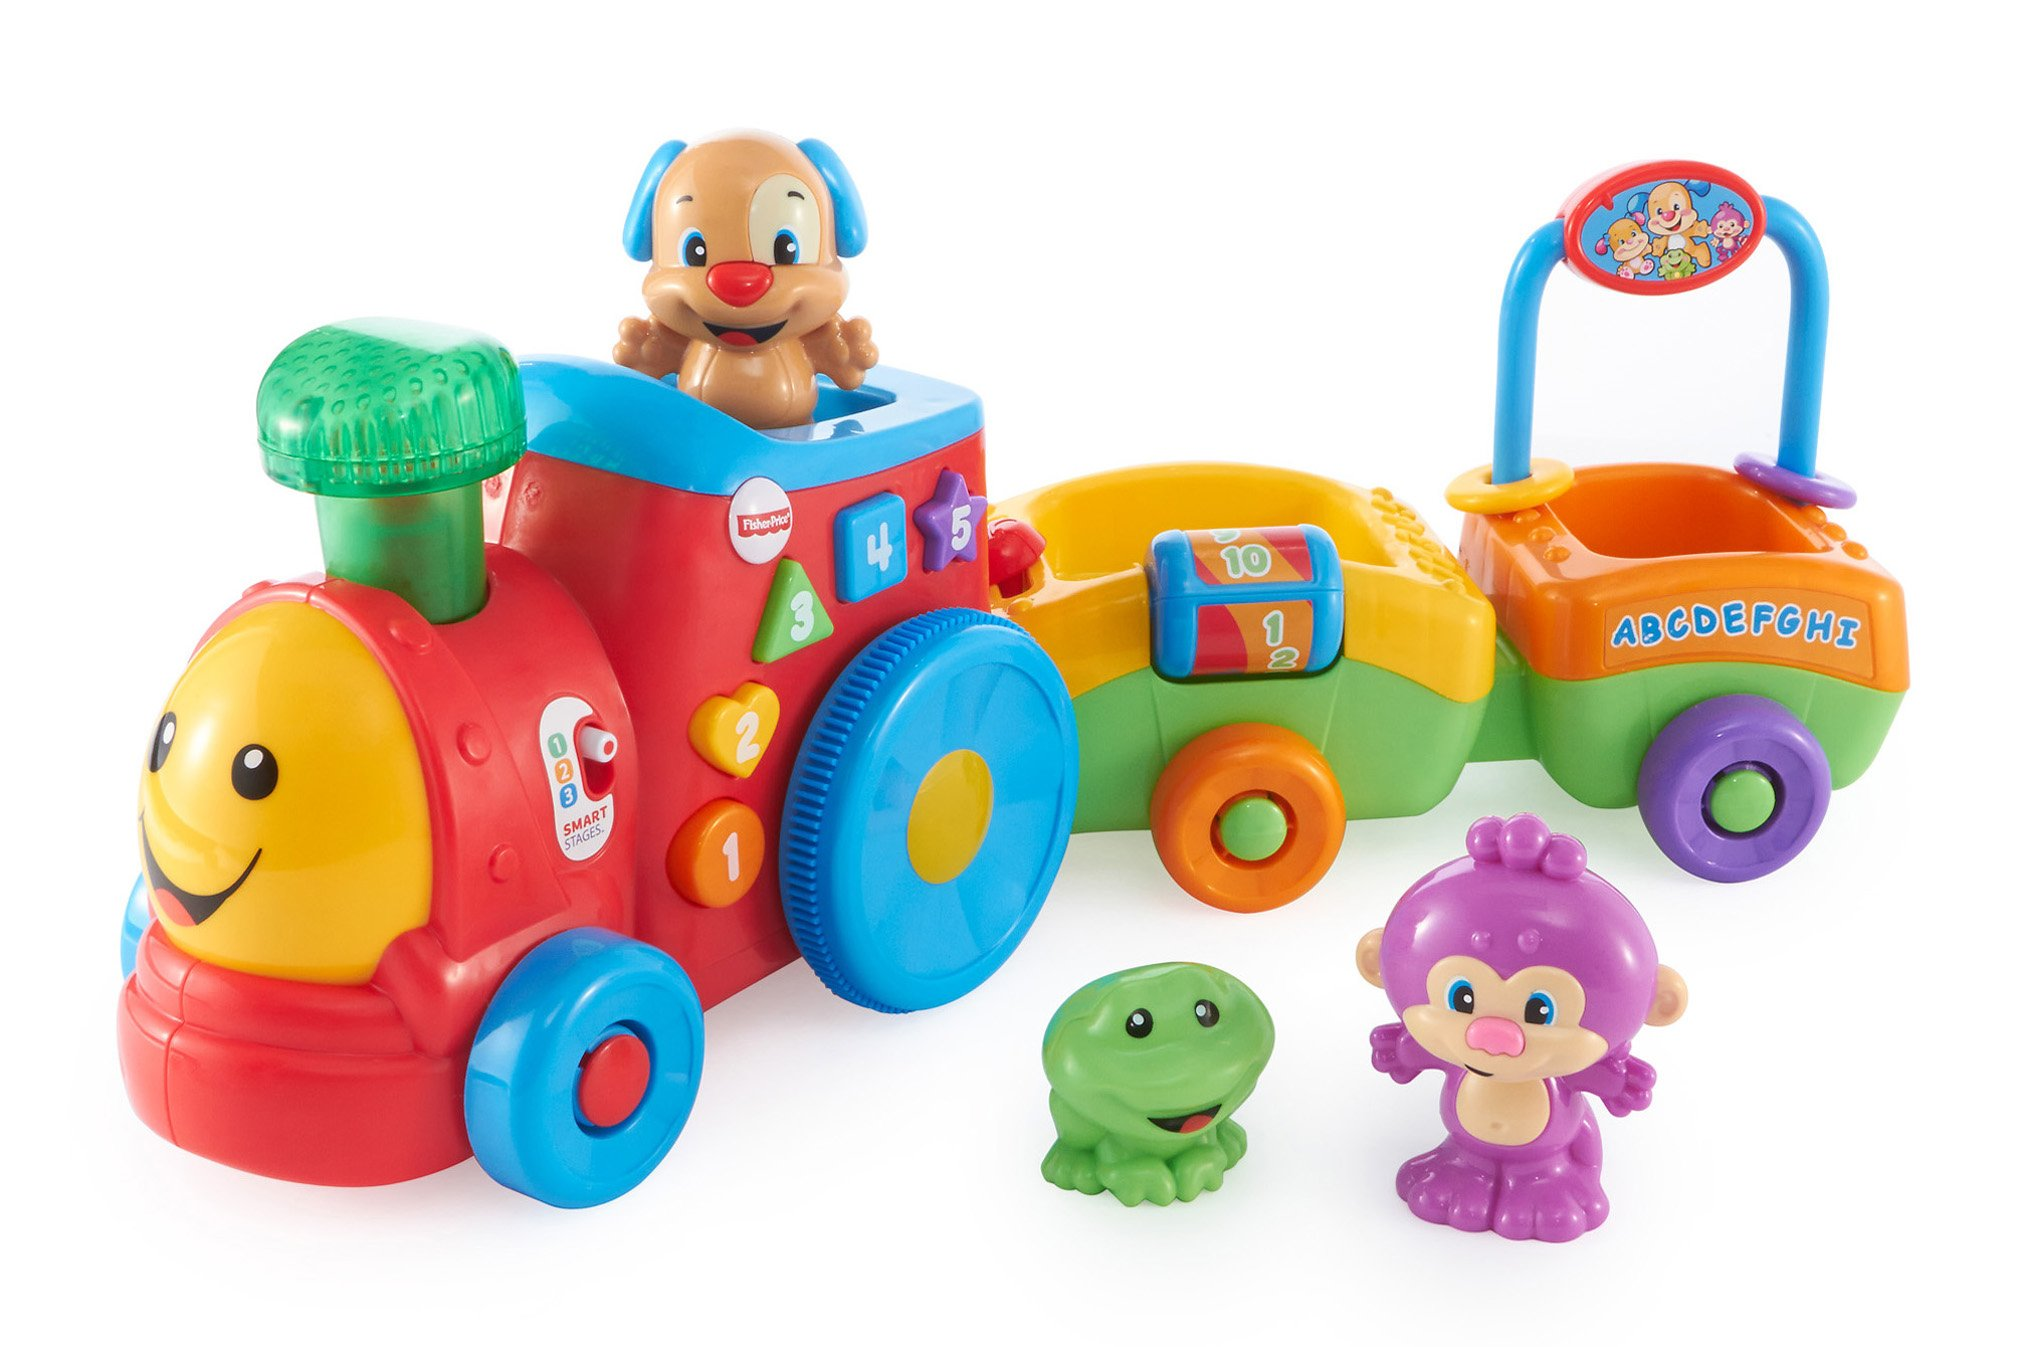 Fisher-Price Laugh & Learn Smart Stages Puppy's Smart Train by Fisher-Price (Image #21)